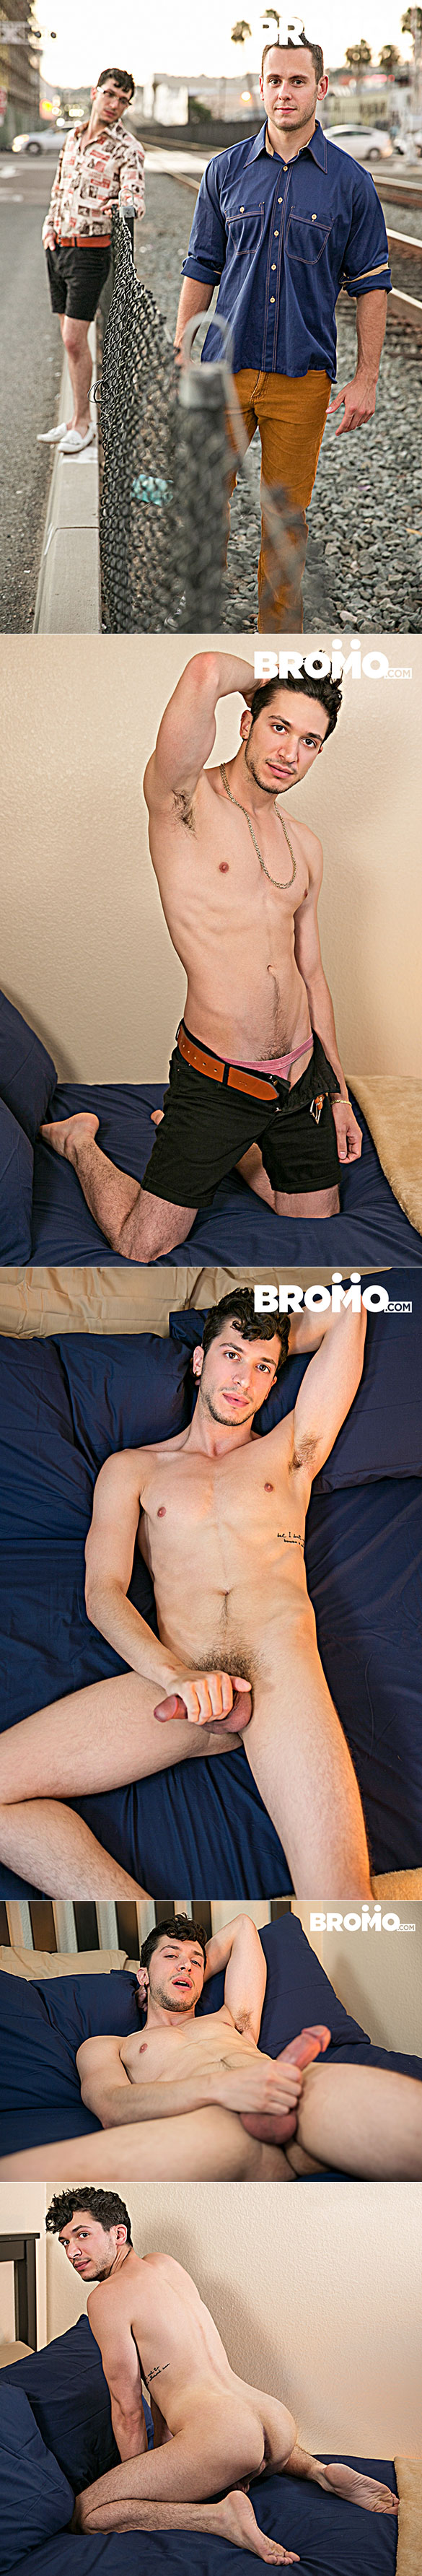 "Bromo: Brenner Bolton and Antonio Manero flip fuck raw in ""Bareback Cruising, Part 2"""